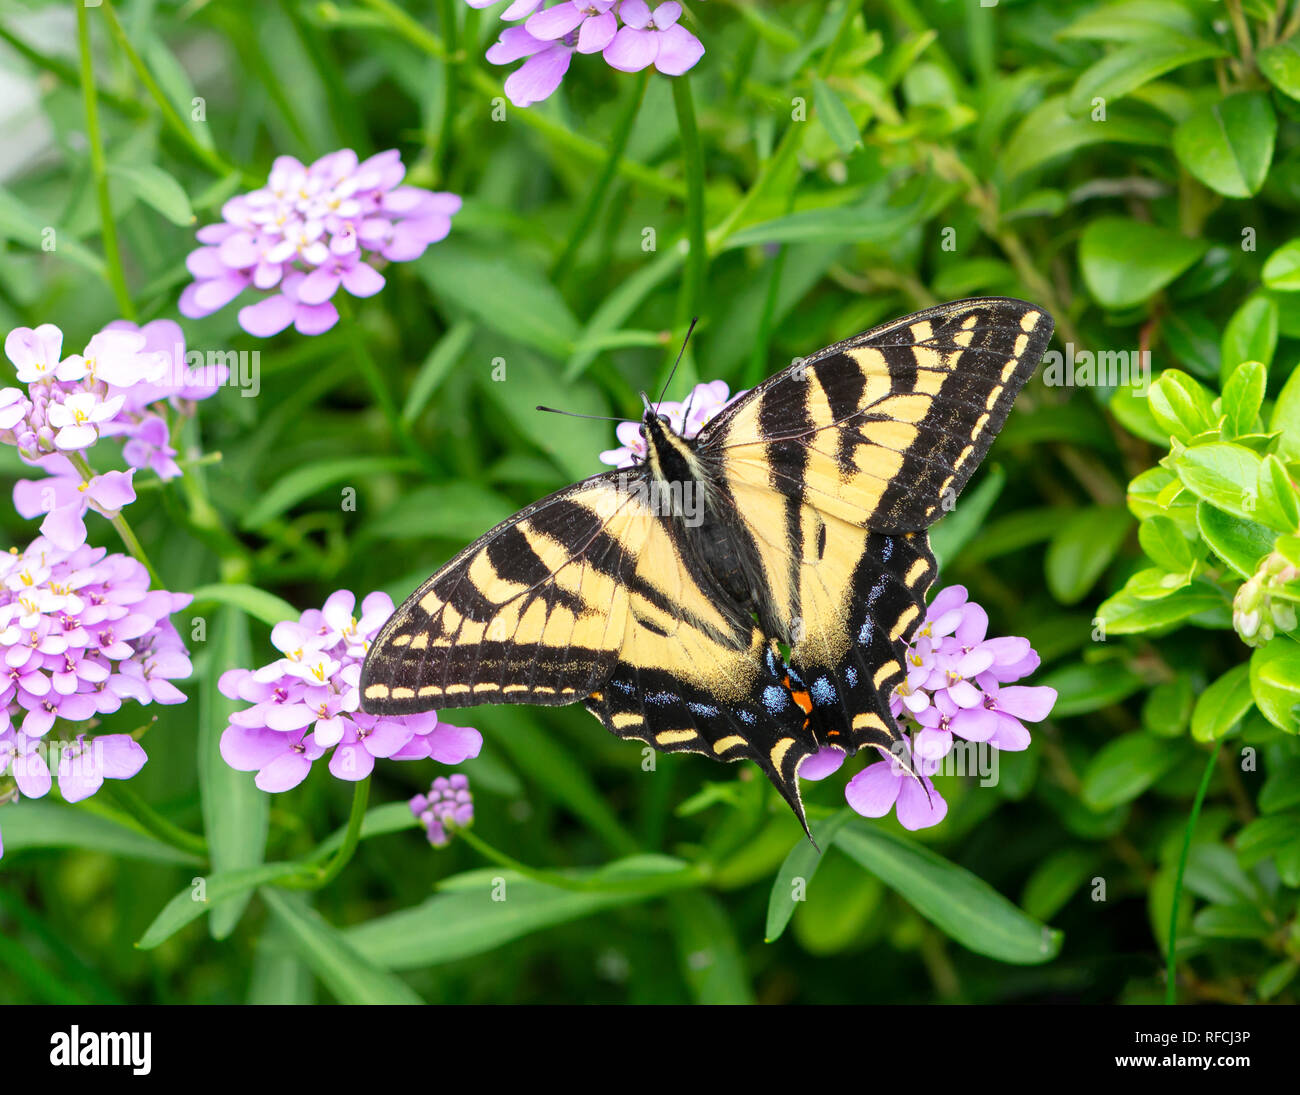 Tiger swallowtail butterfly Papilionidae with spread wings, feeding on verbena flowers - Stock Image